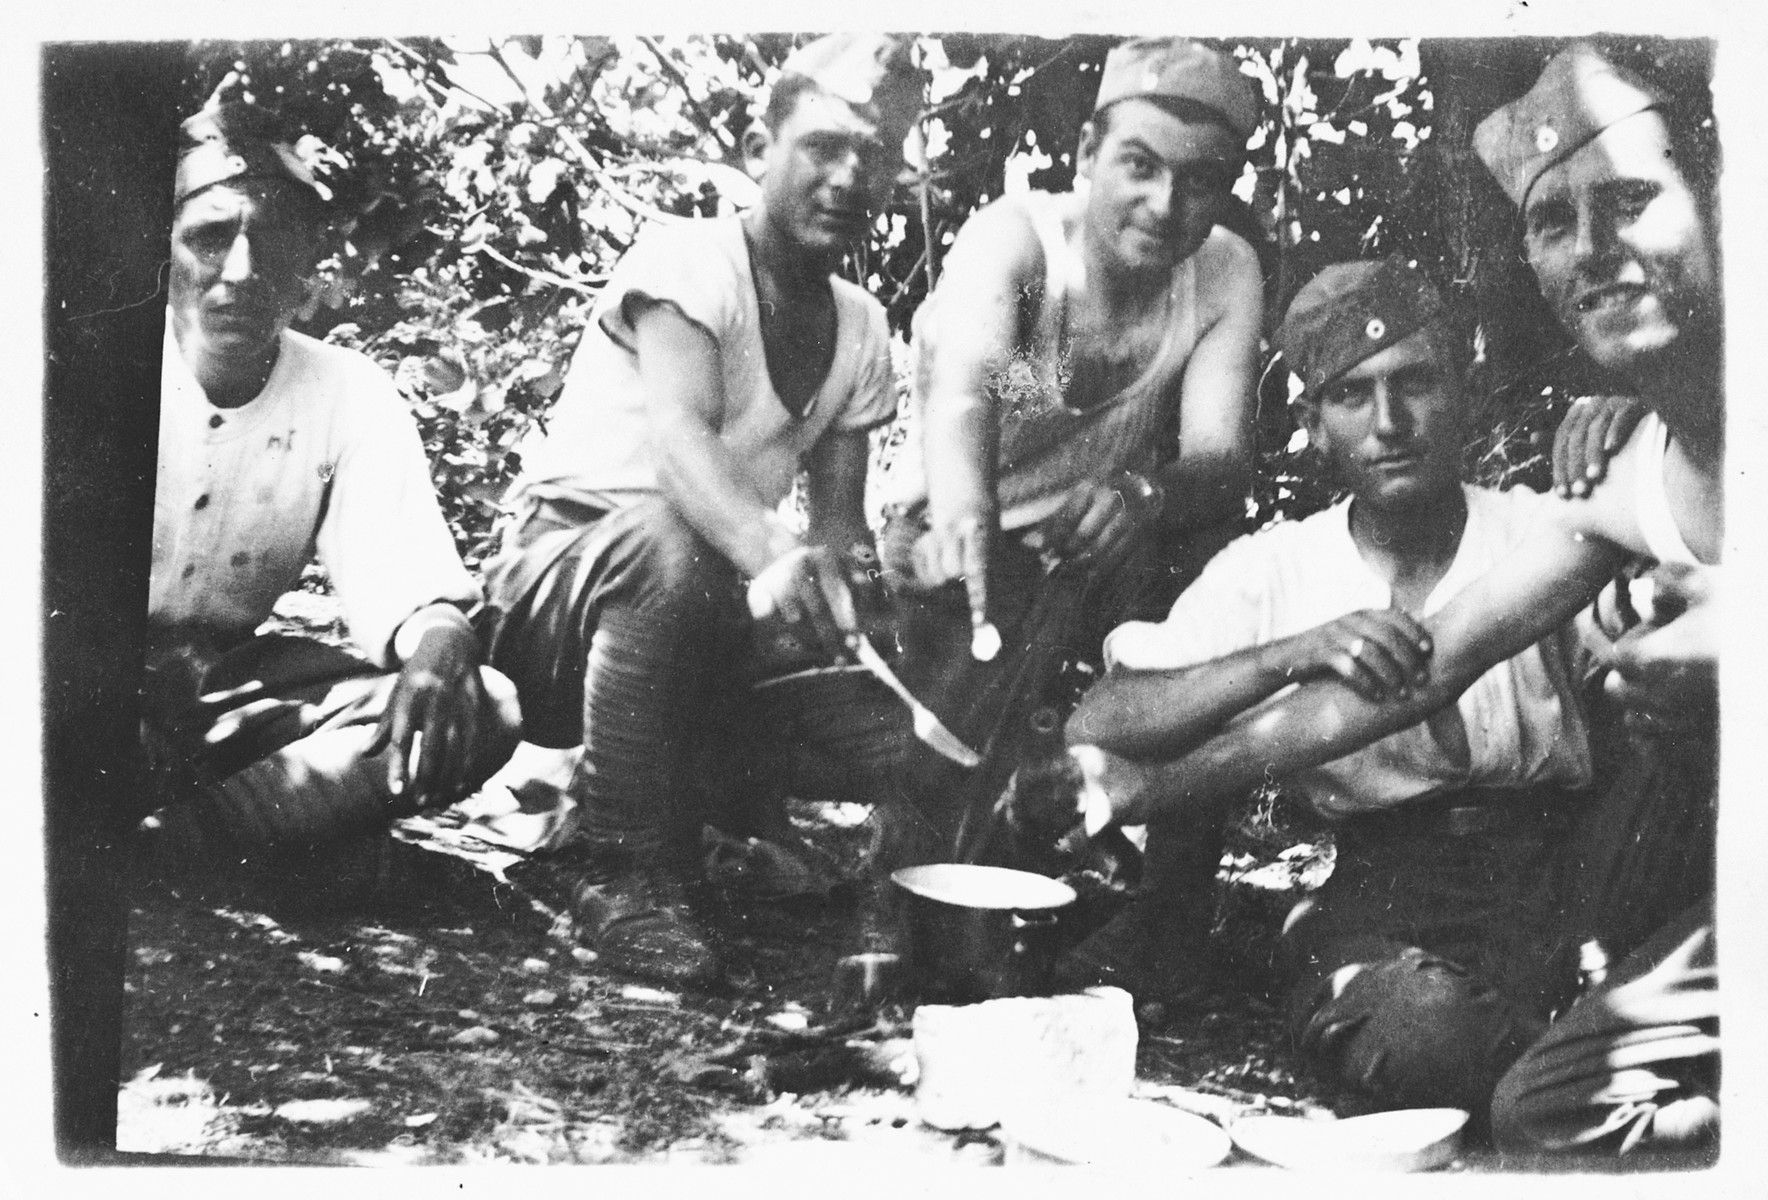 A group of Greek POWs, including some Jews, cook dinner outdoors during their captivity.